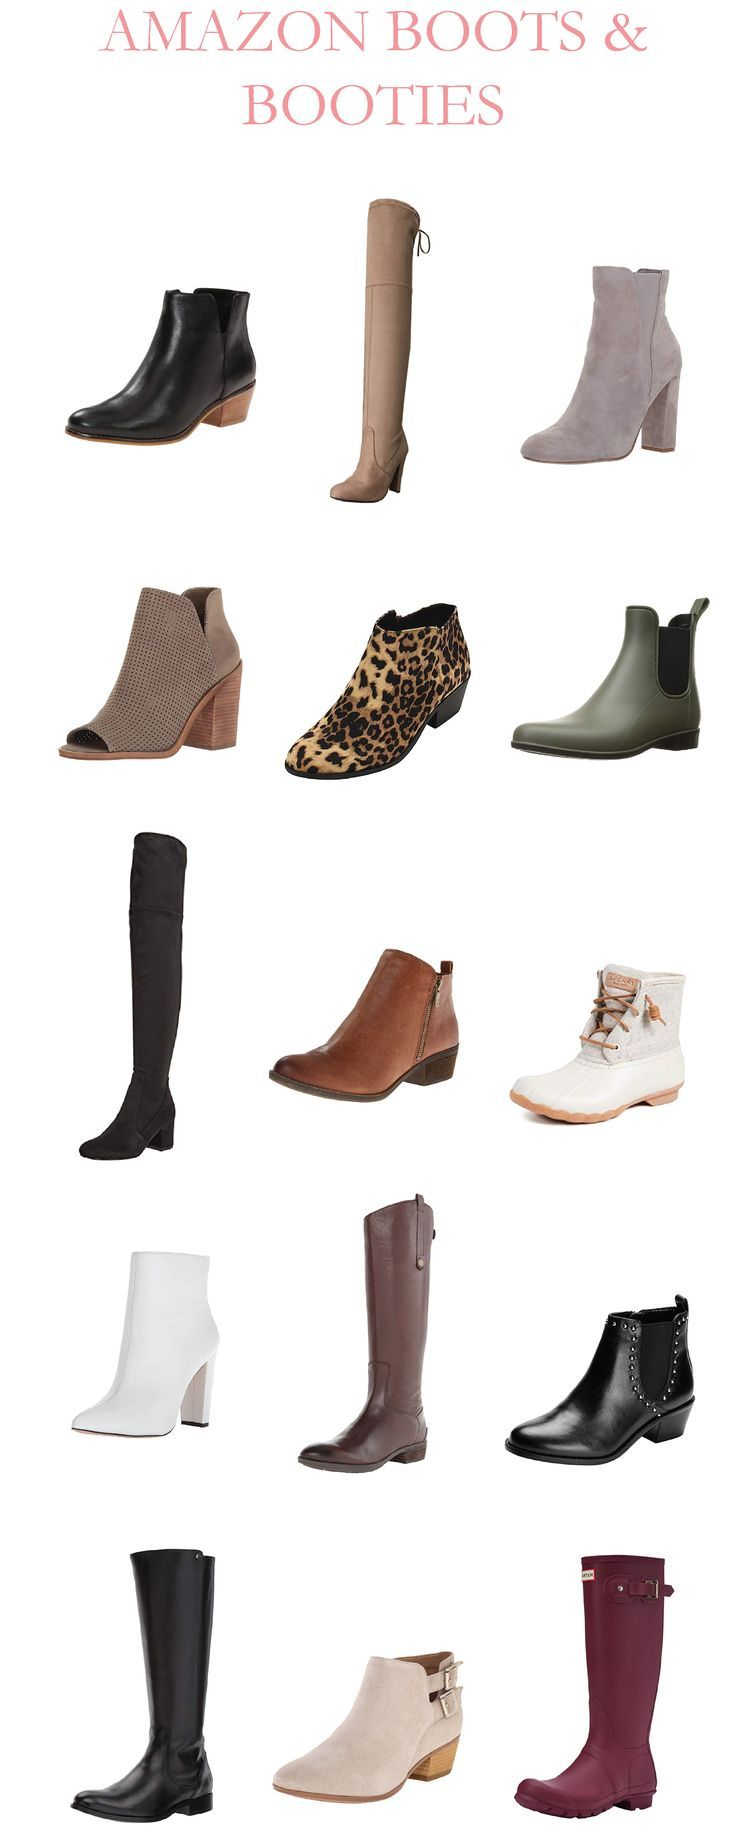 Best Black Booties 2019 Amazon Boots and Booties | Fall Booties | Best Fall Boots | For